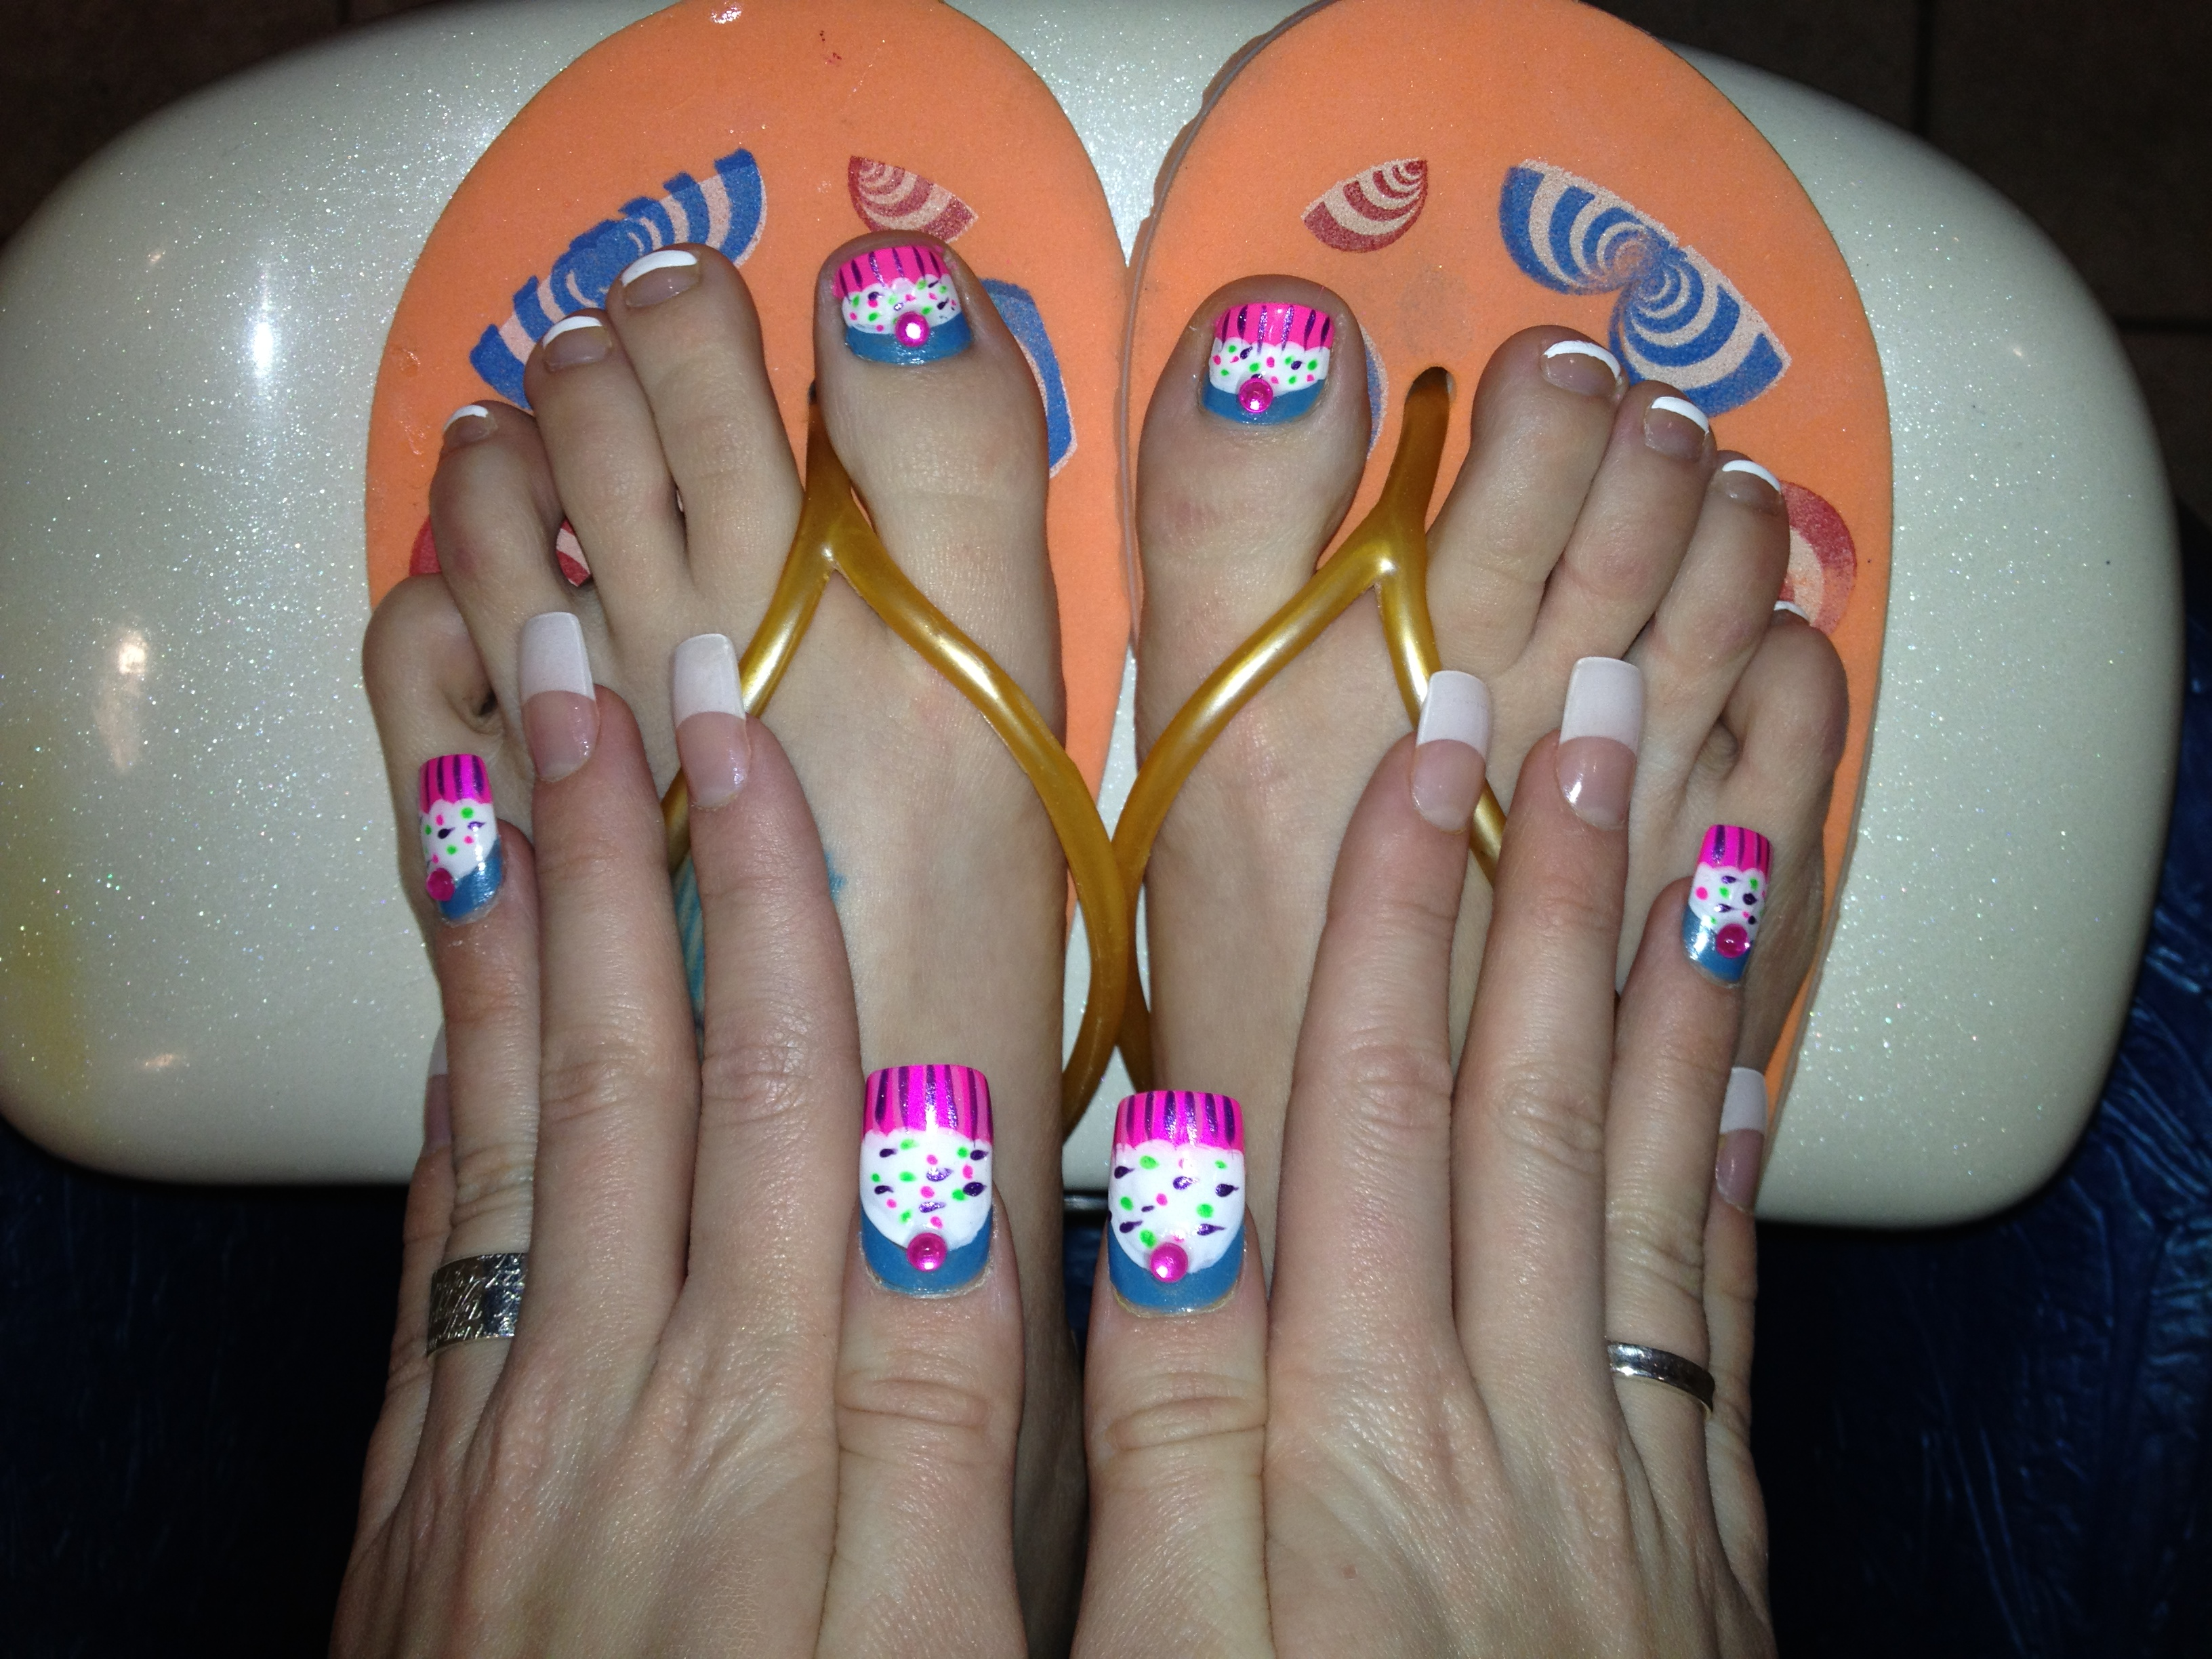 Cute Pinky Cupcake Nail Designs On French White Tips Acrylic Nails